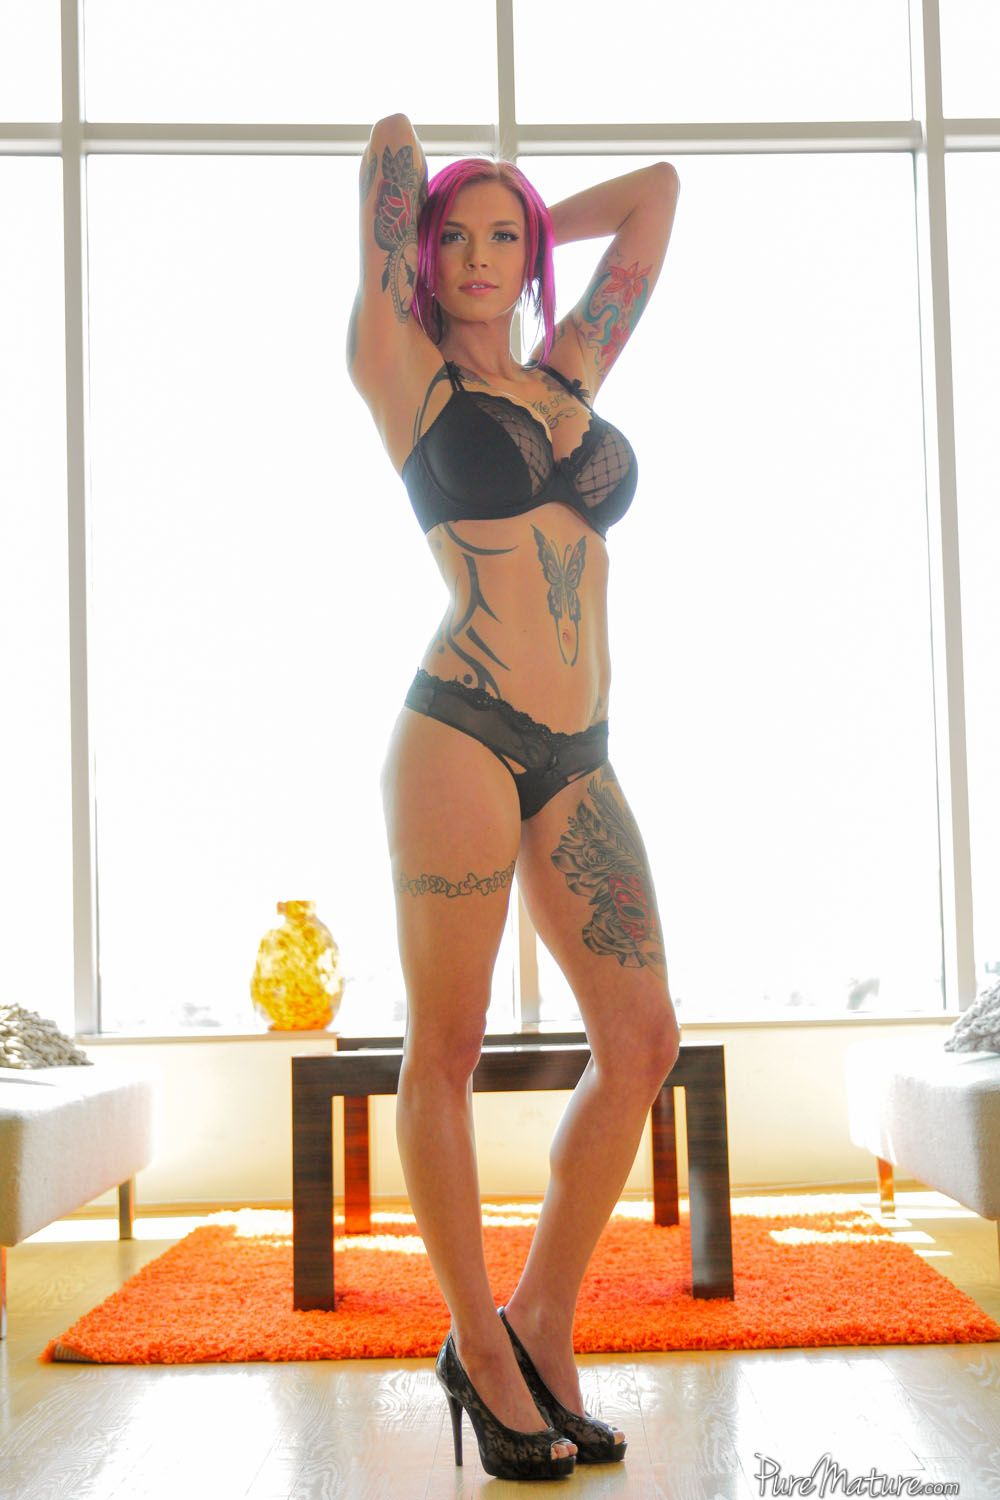 Puremature tattooed anna bell peaks stunning body of art 8